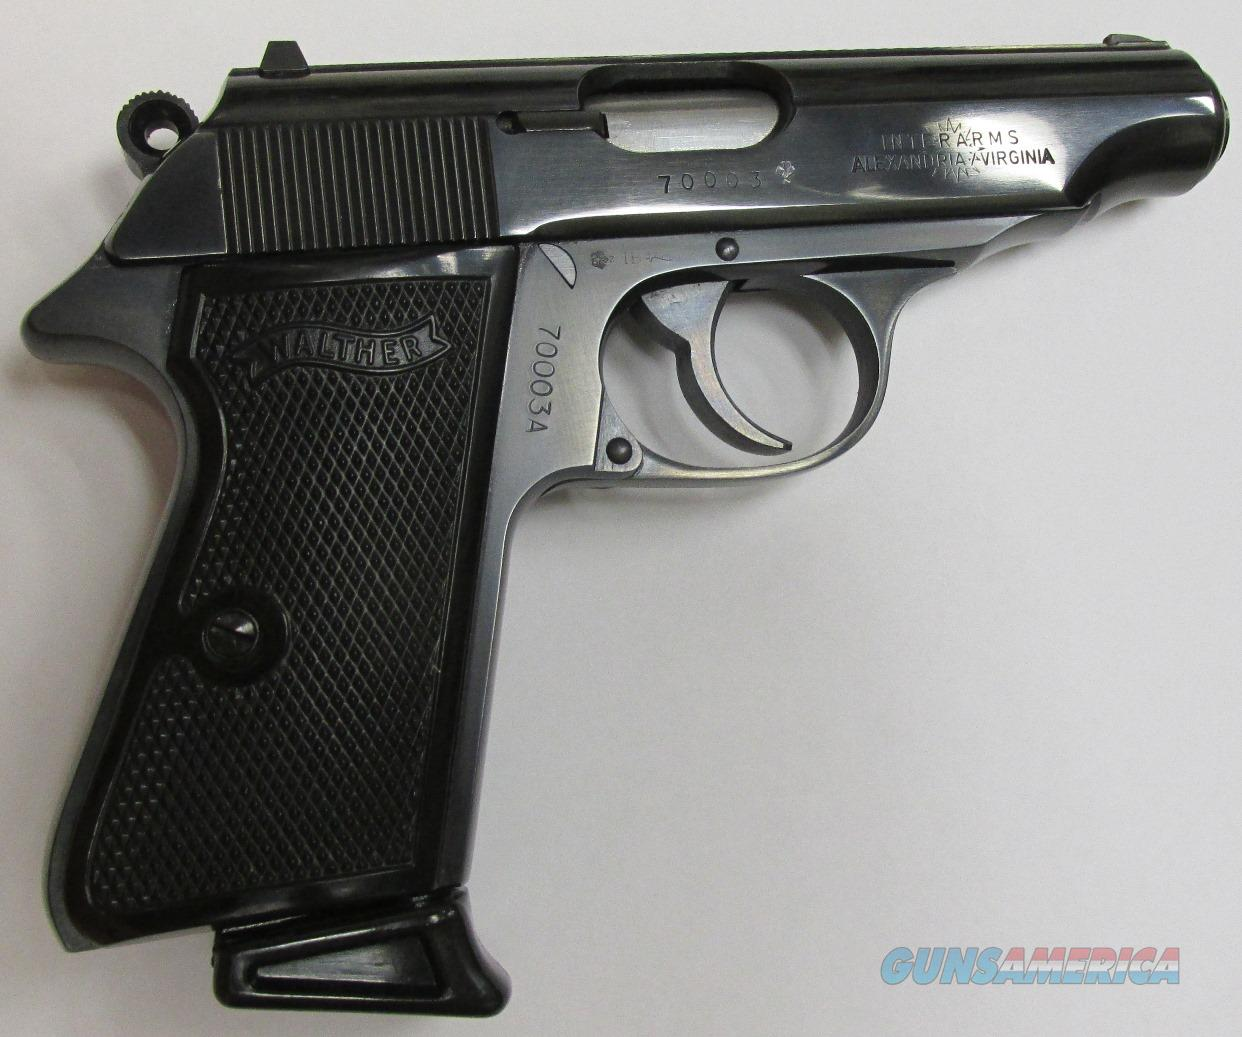 Walther Model PP Vintage 380 ACP Interarms W.Germany NOS 9mm kurz  Guns > Pistols > Walther Pistols > Post WWII > PPK Series